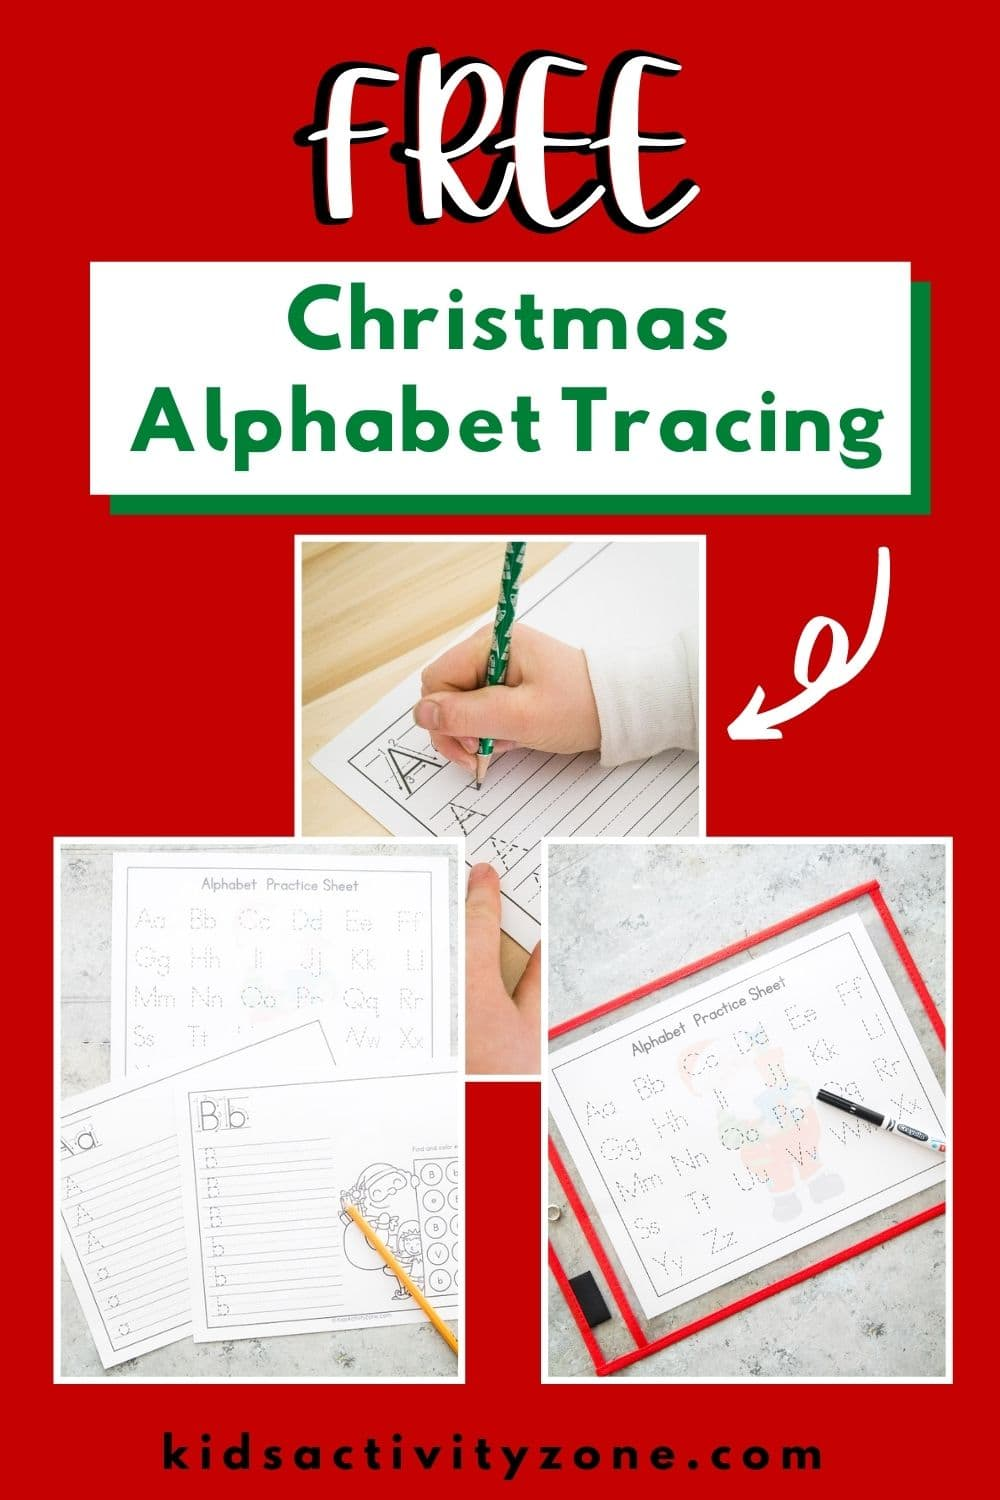 Christmas Alphabet Practice Worksheets are holiday fun so kids will love them! They will practice handwriting and letter recognition in a fun holiday themed printable!